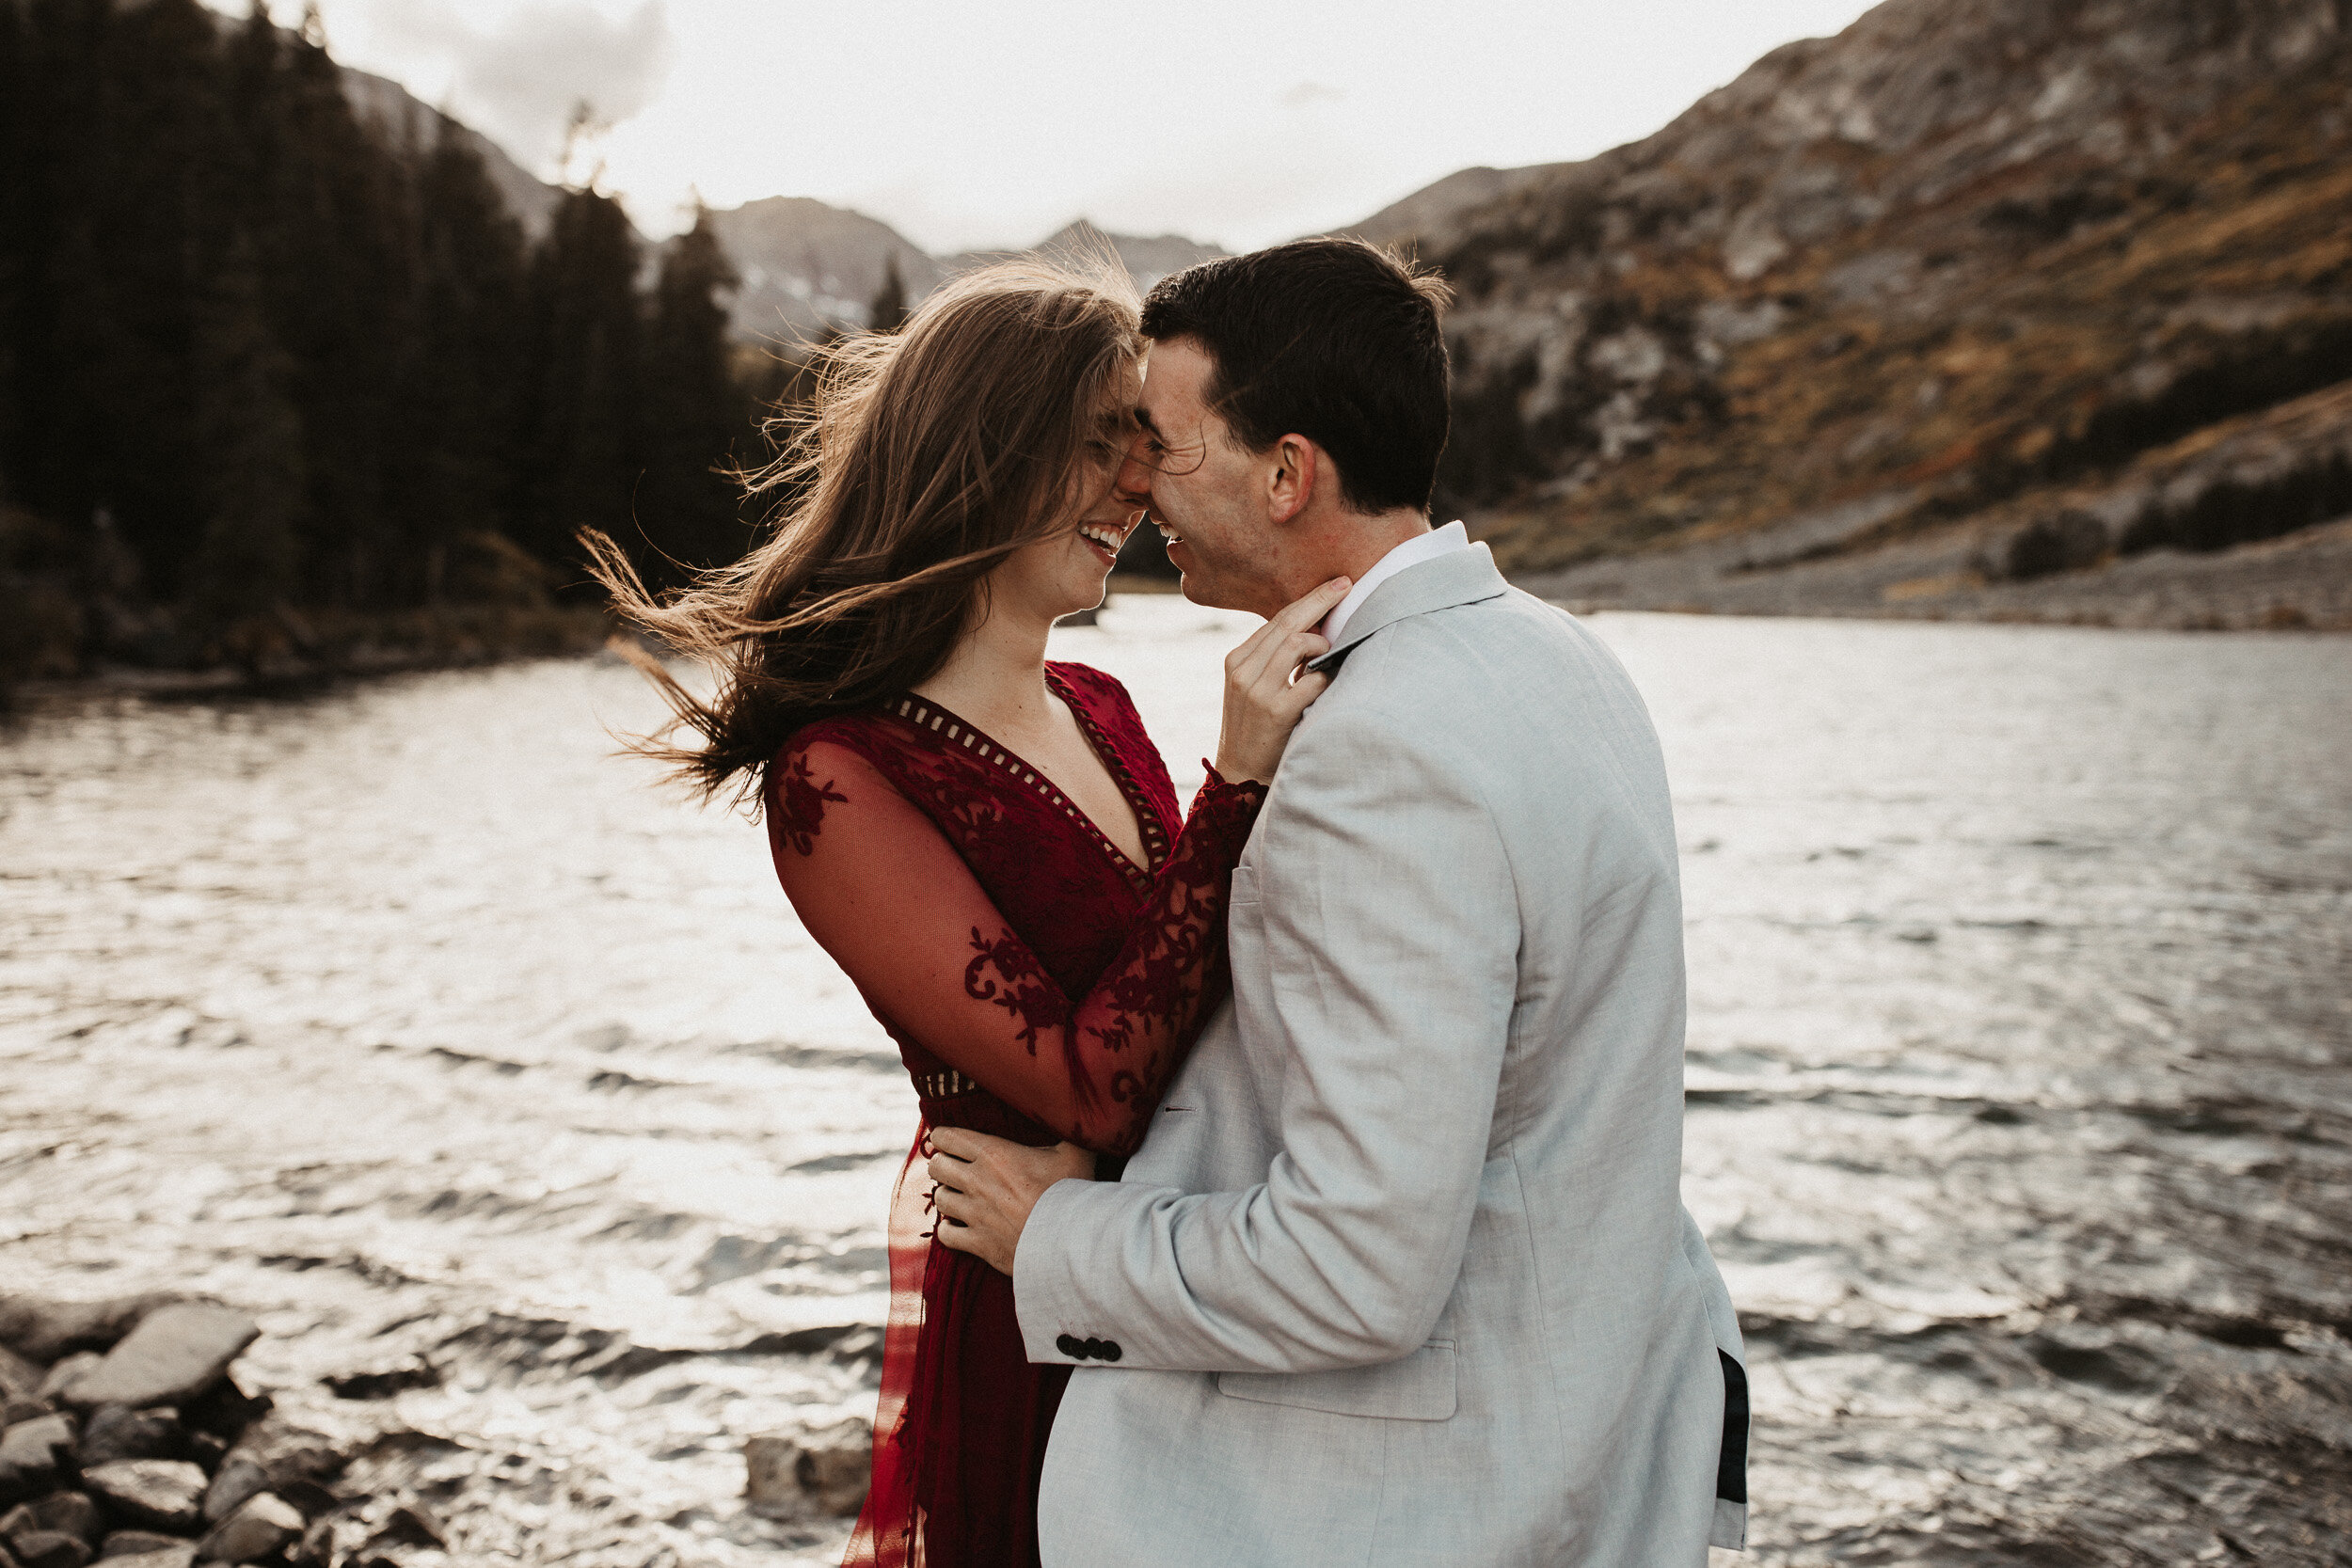 Claire_&_Matthew_Engagment_Breckenridge_Colorado_Fall_0209.jpg